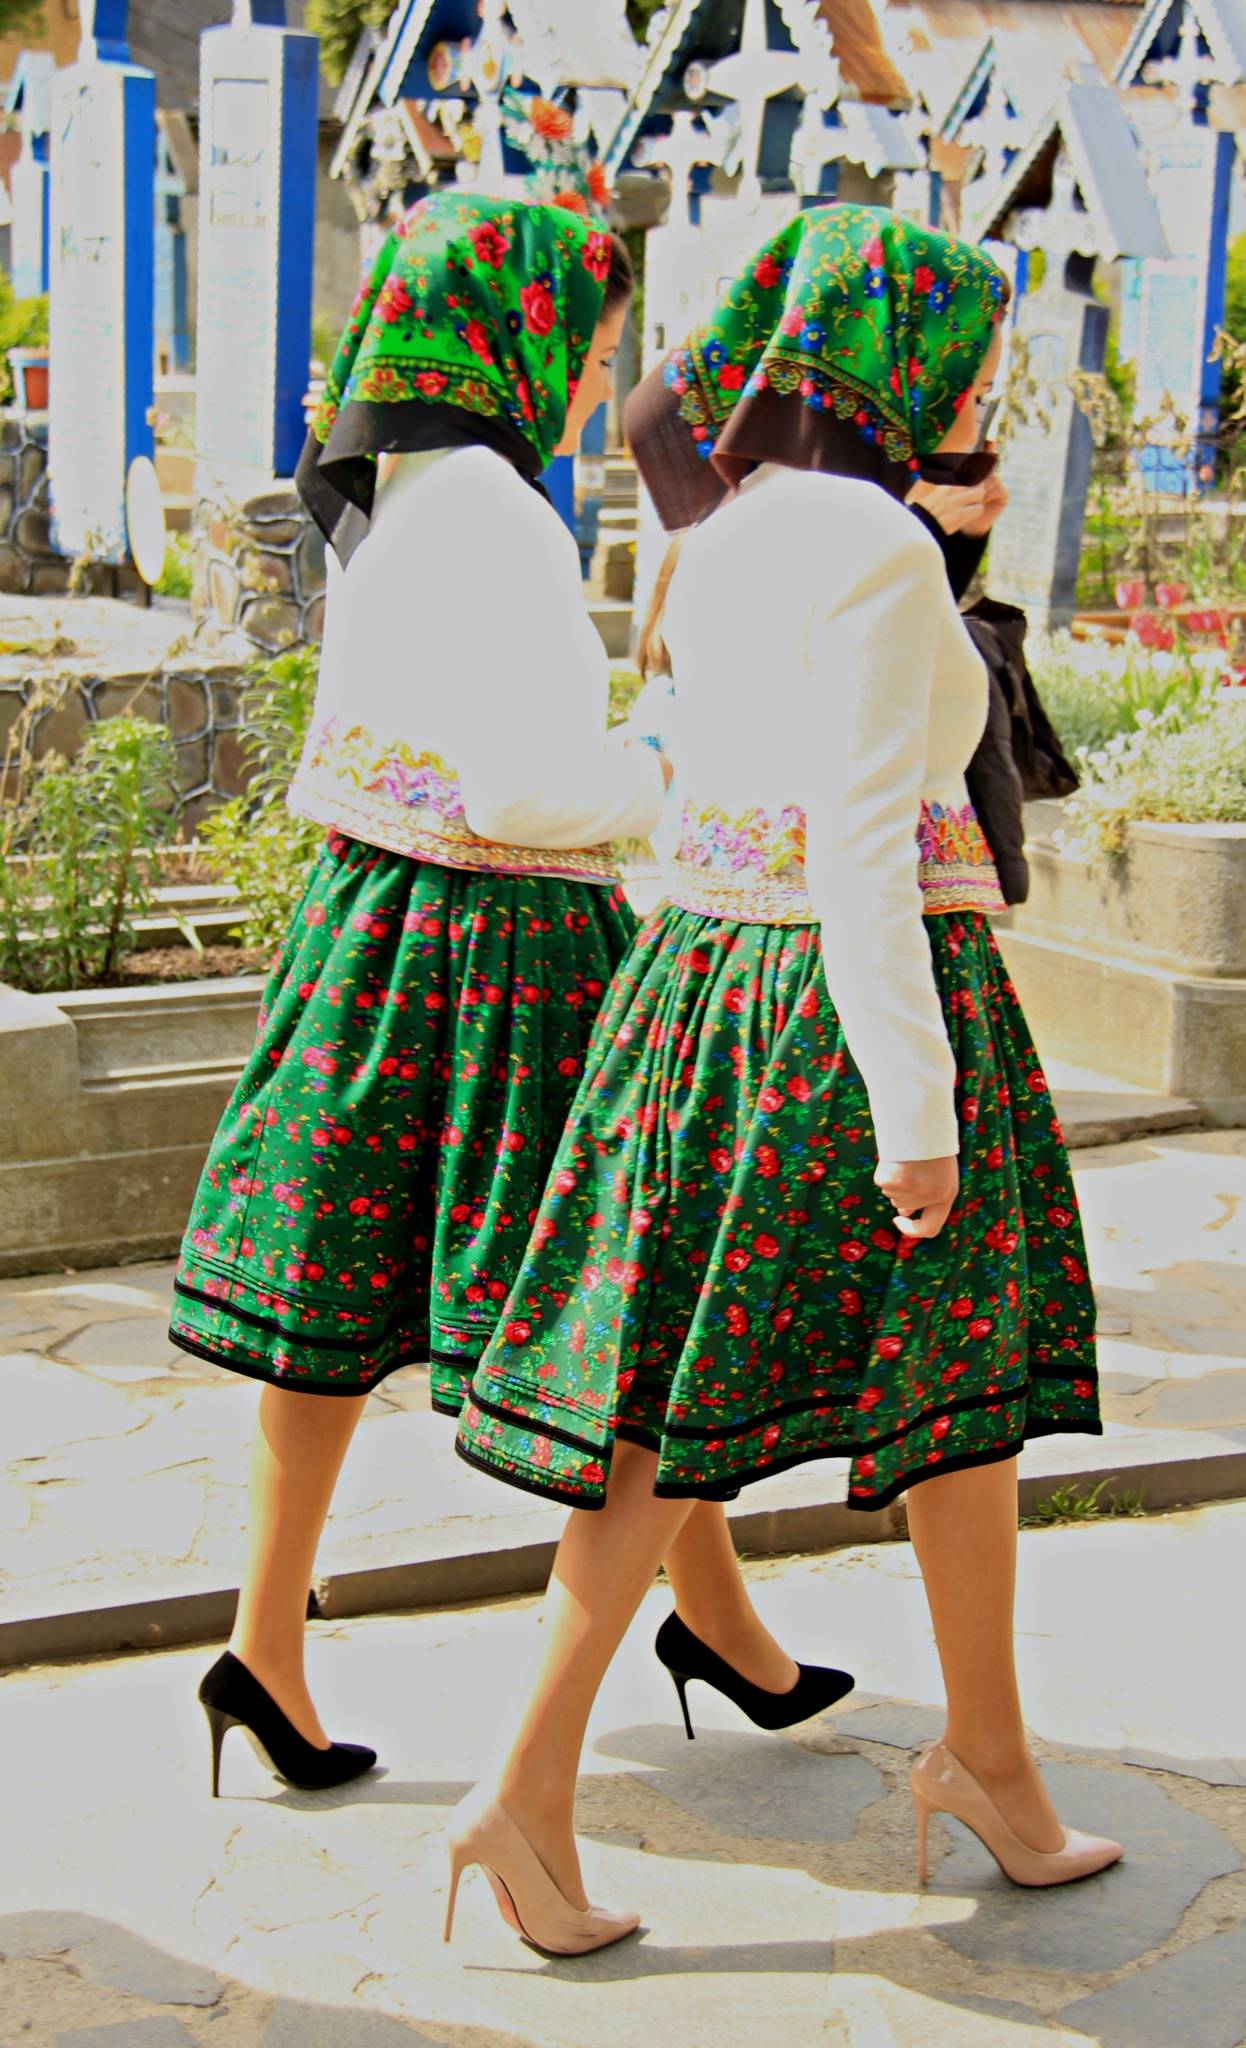 The sexy ladies of Săpânţa village, walking with graciously. Photo by Ovidiu Balaj